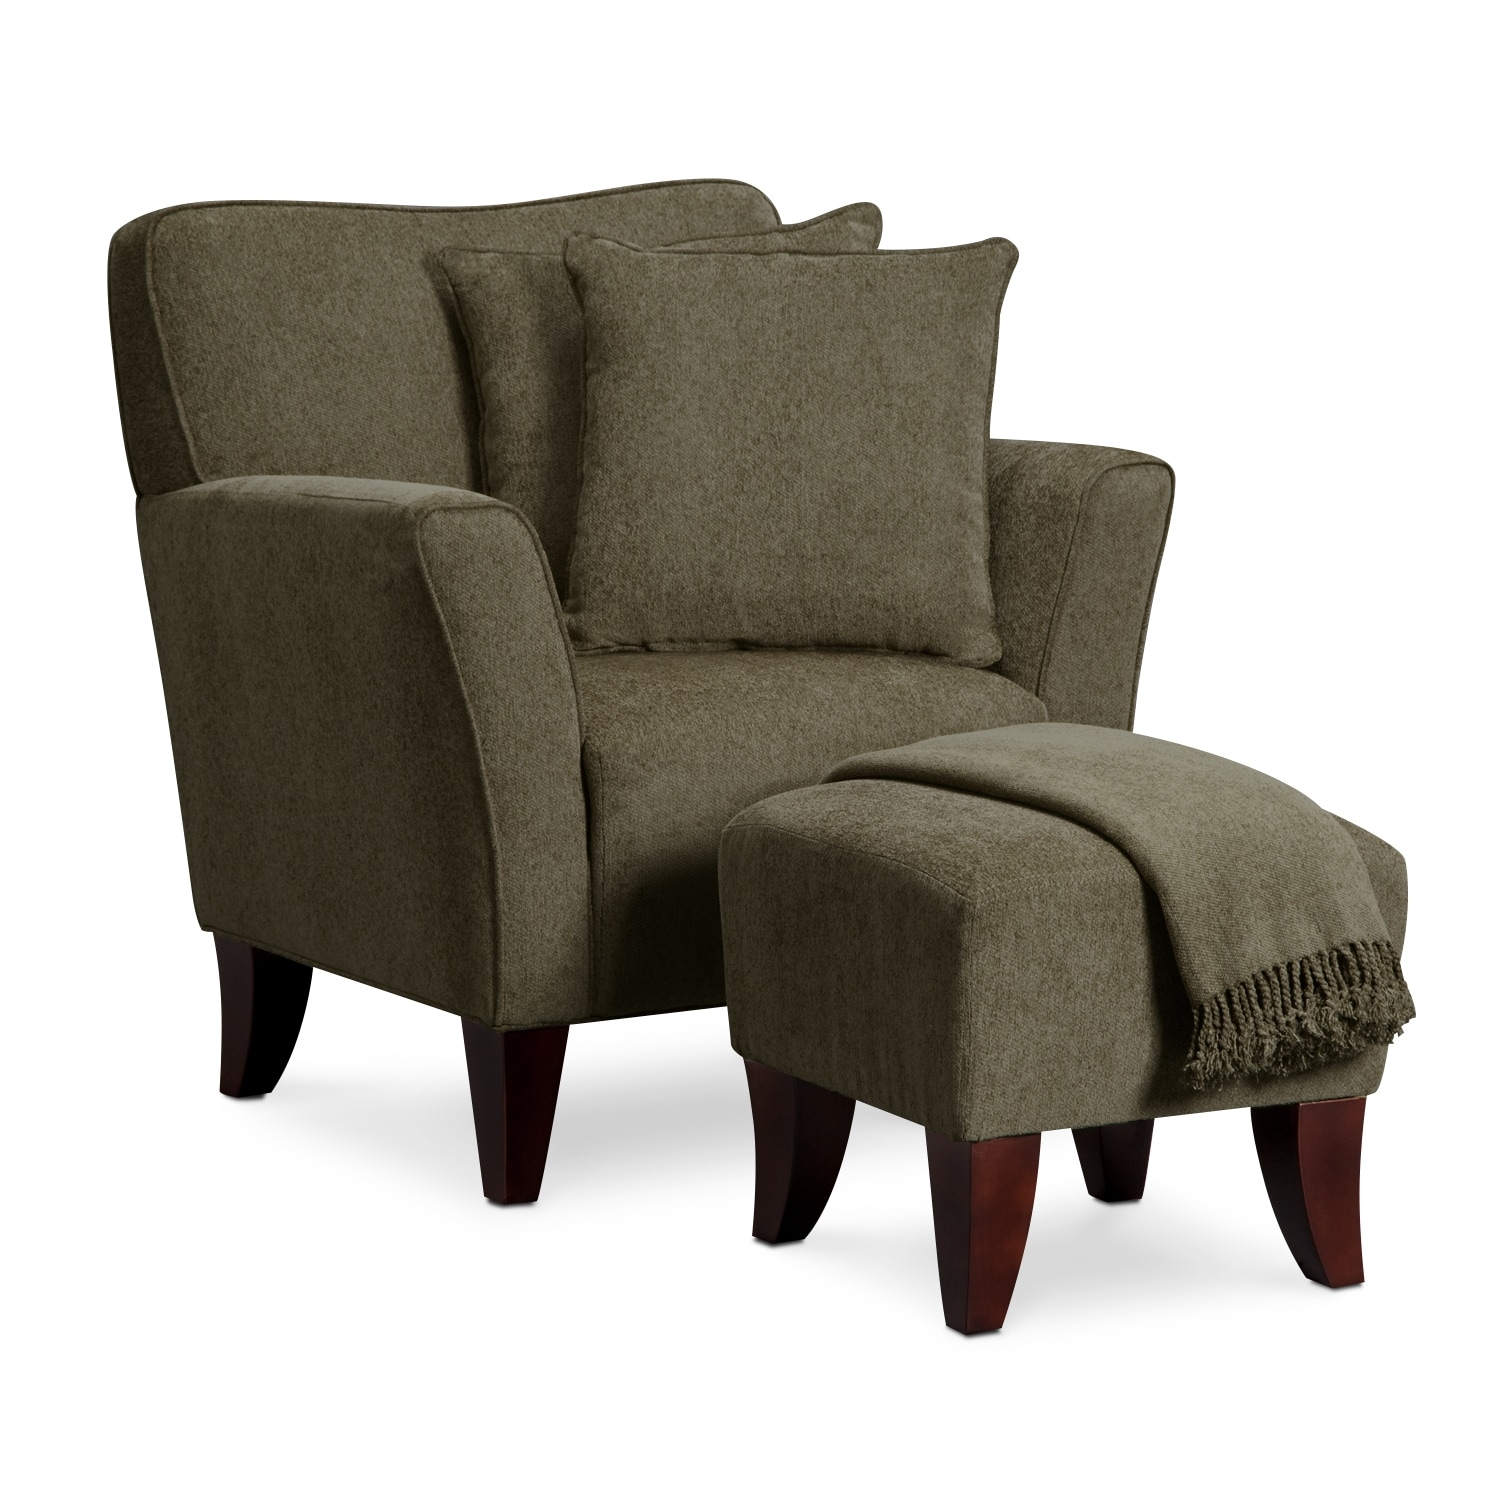 Living Room Furniture - Celeste Chair, Ottoman, Pillows and Throw - Sage